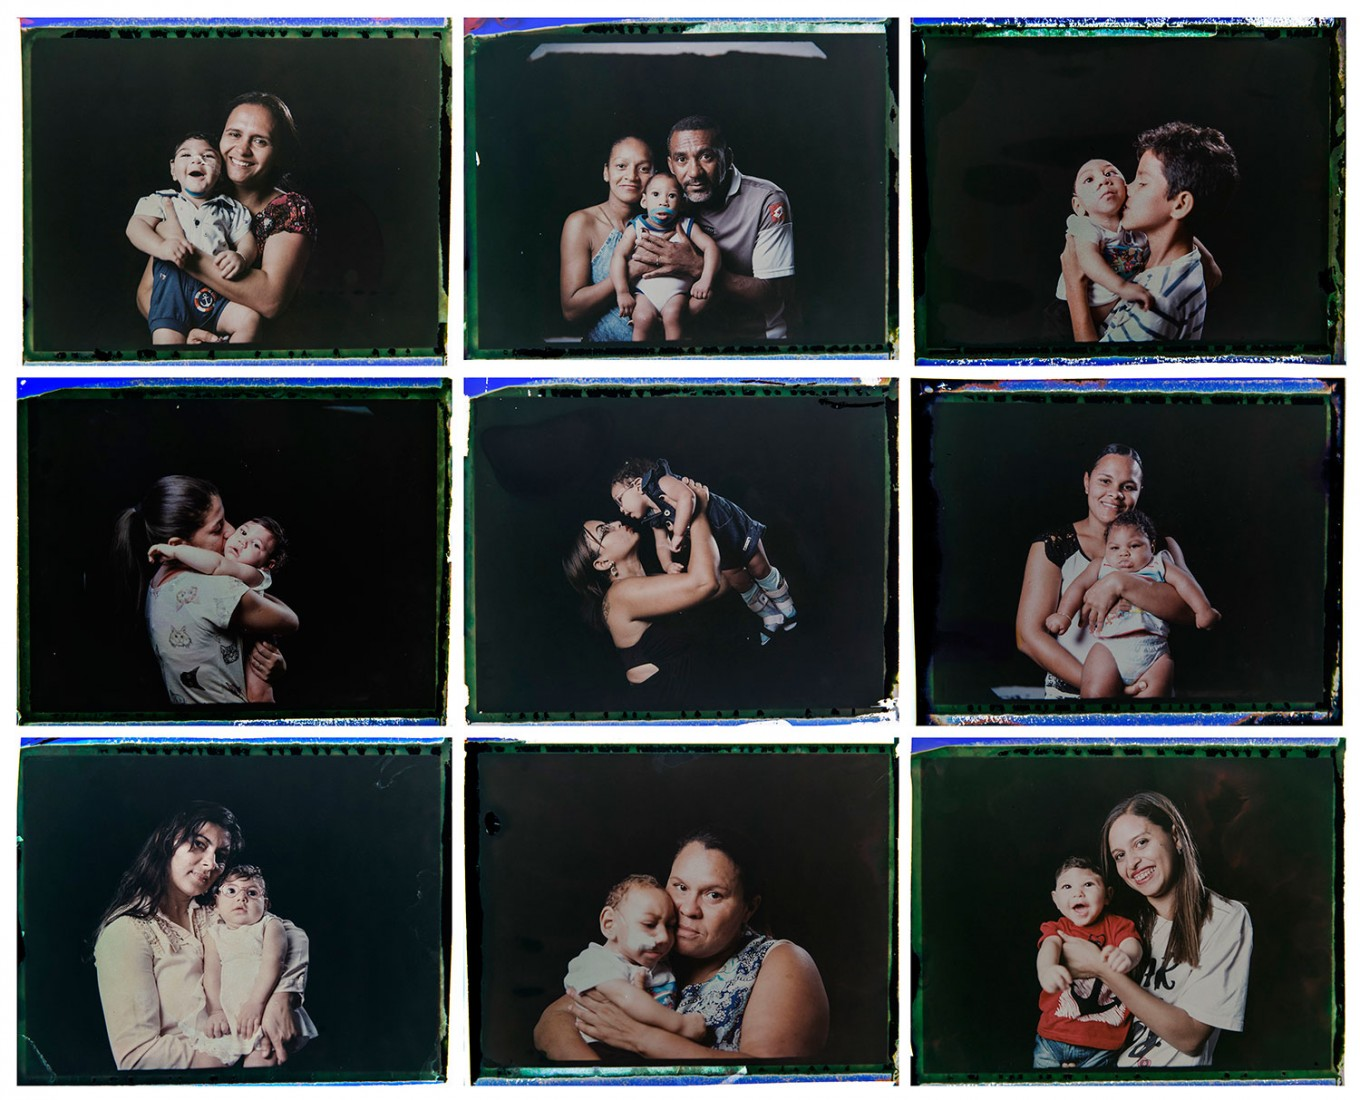 This combo of nine photos taken between Sept. 26 and 29, 2016, shows infants who were born with microcephaly, one of many serious medical problems caused by congenital Zika syndrome, photographed with their mothers or family member, in Pernambuco state, Brazil. Associated Press photographer Felipe Dana has followed these babies from hospitals to their cribs, from brain exams to bath time. Dana used an instant film so they could immediately see and keep the photographs he made of them. Dana gave the mothers the prints but preserved the negatives, later bleaching and scanning them so they mirrored the images they took home. AP Photo/Felipe Dana